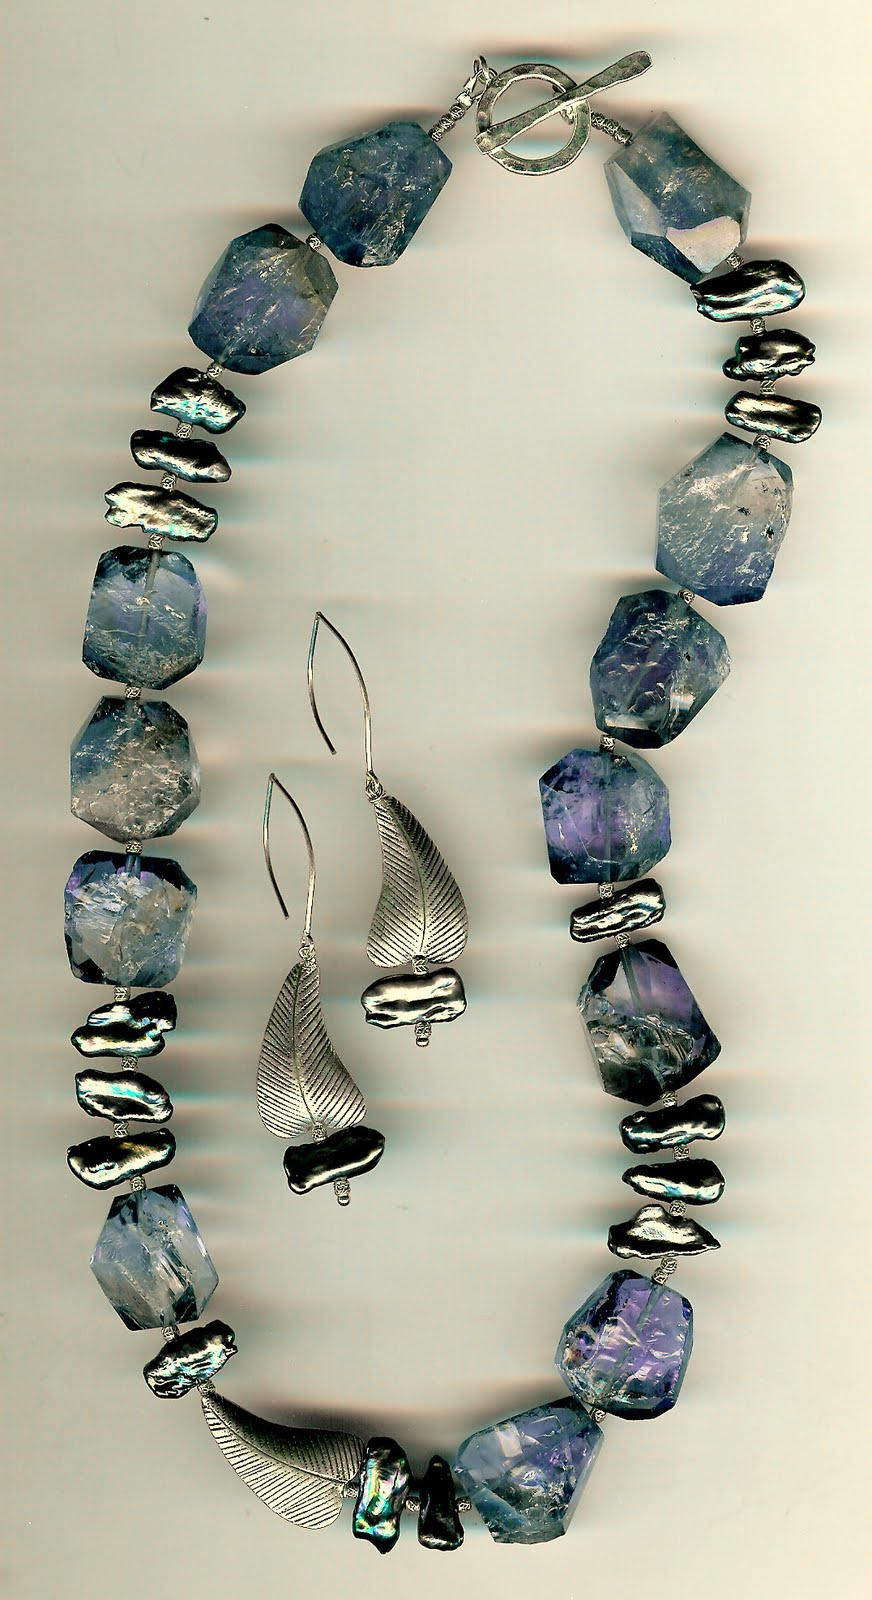 186. Rugged Amethyst, Biwa Pearls and Karen Hill Thai Sterling Silver + Earrings